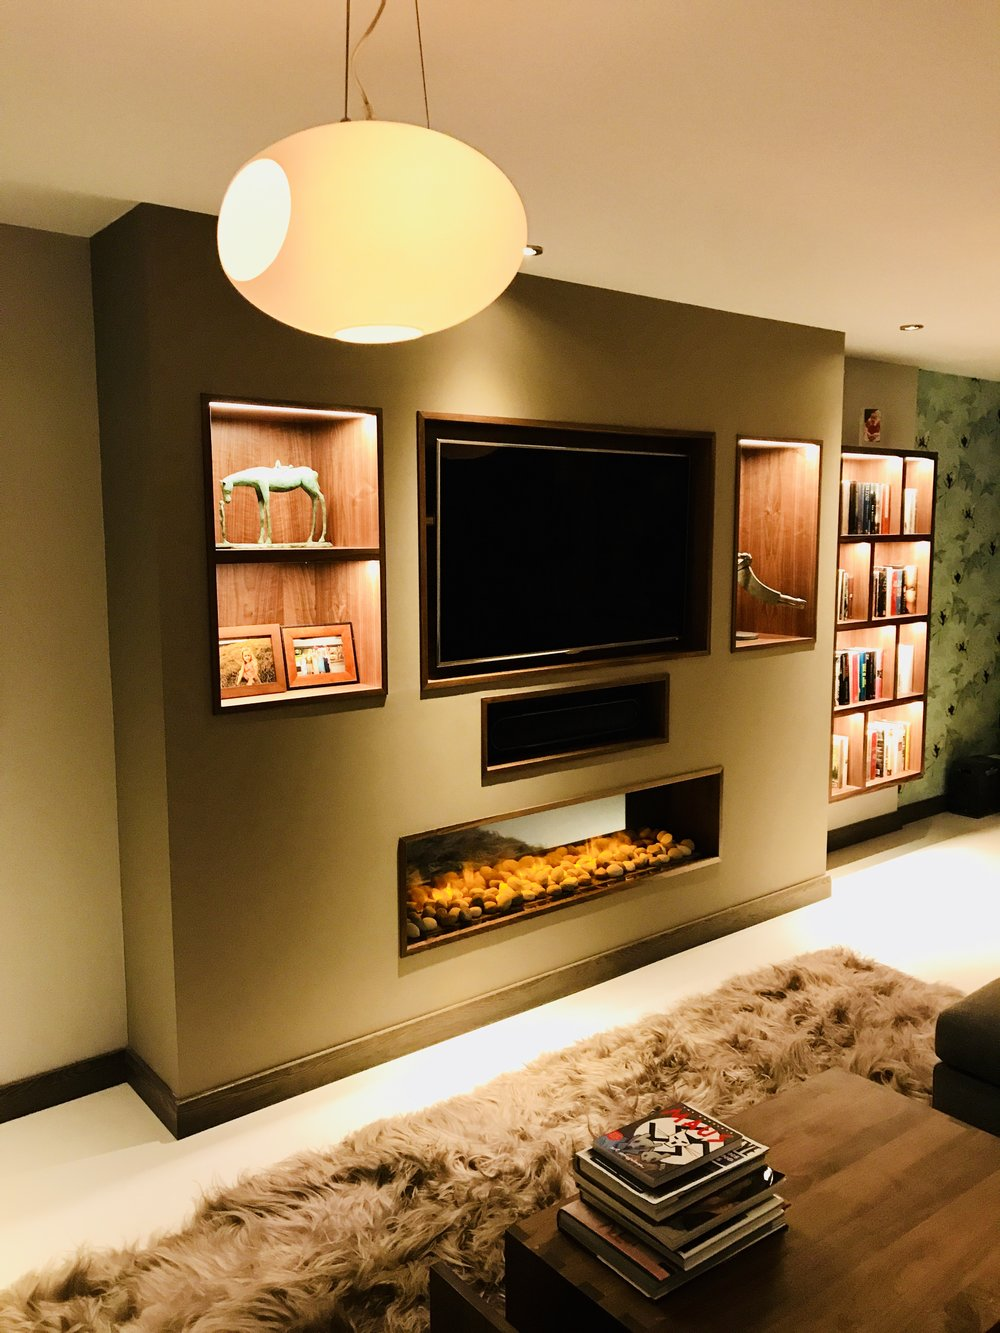 TV and fireplace joinery with wall hung book case